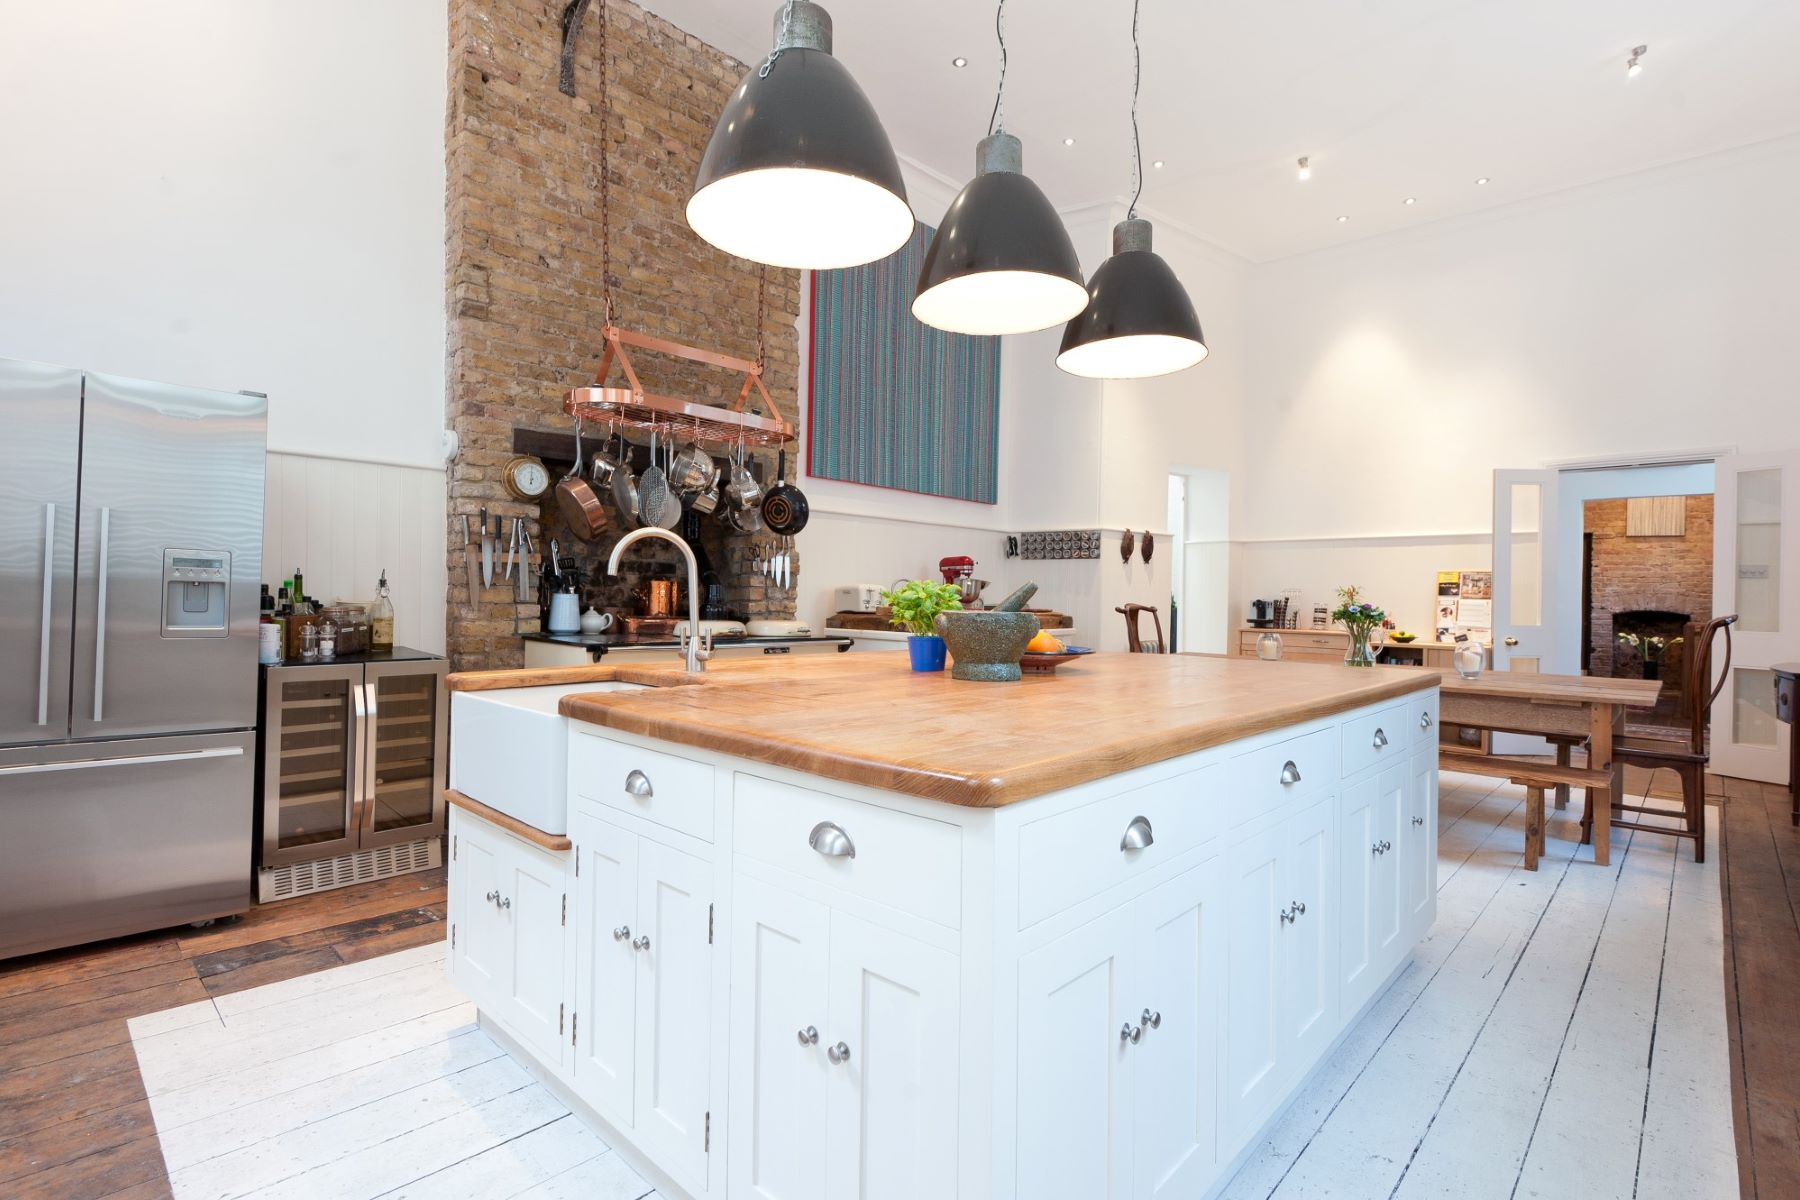 Single Family Home for Sale at Brewery Square, Clerkenwell EC1 London, England, United Kingdom